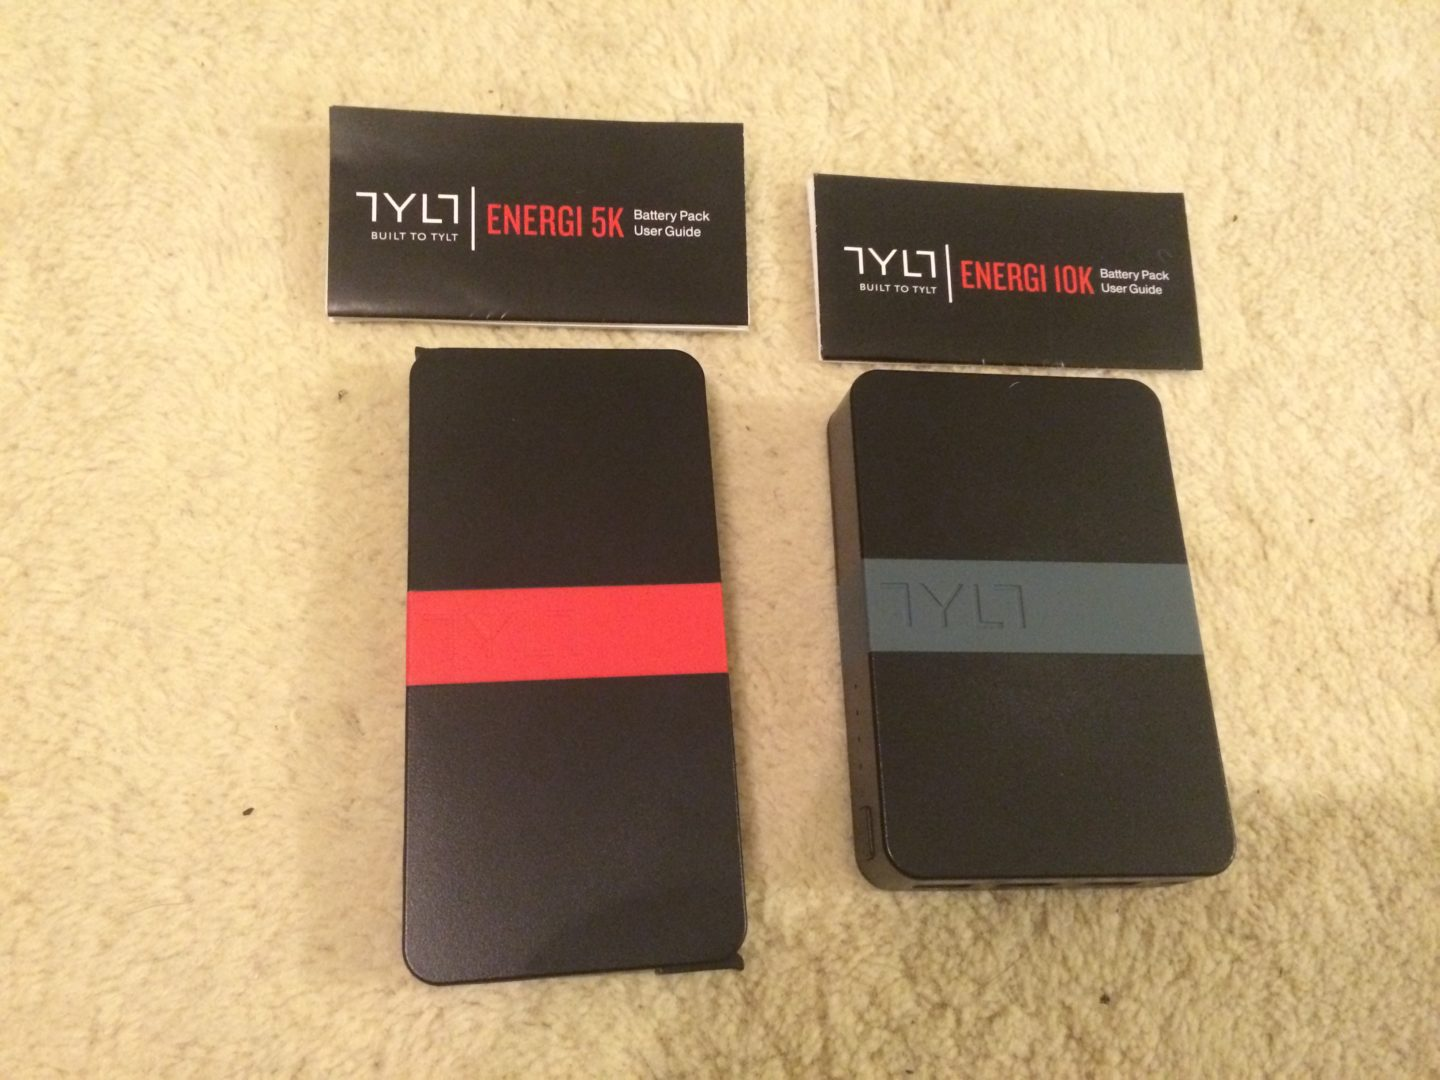 TYLT Portable 5K+ and 10K Battery Packs – Product Review